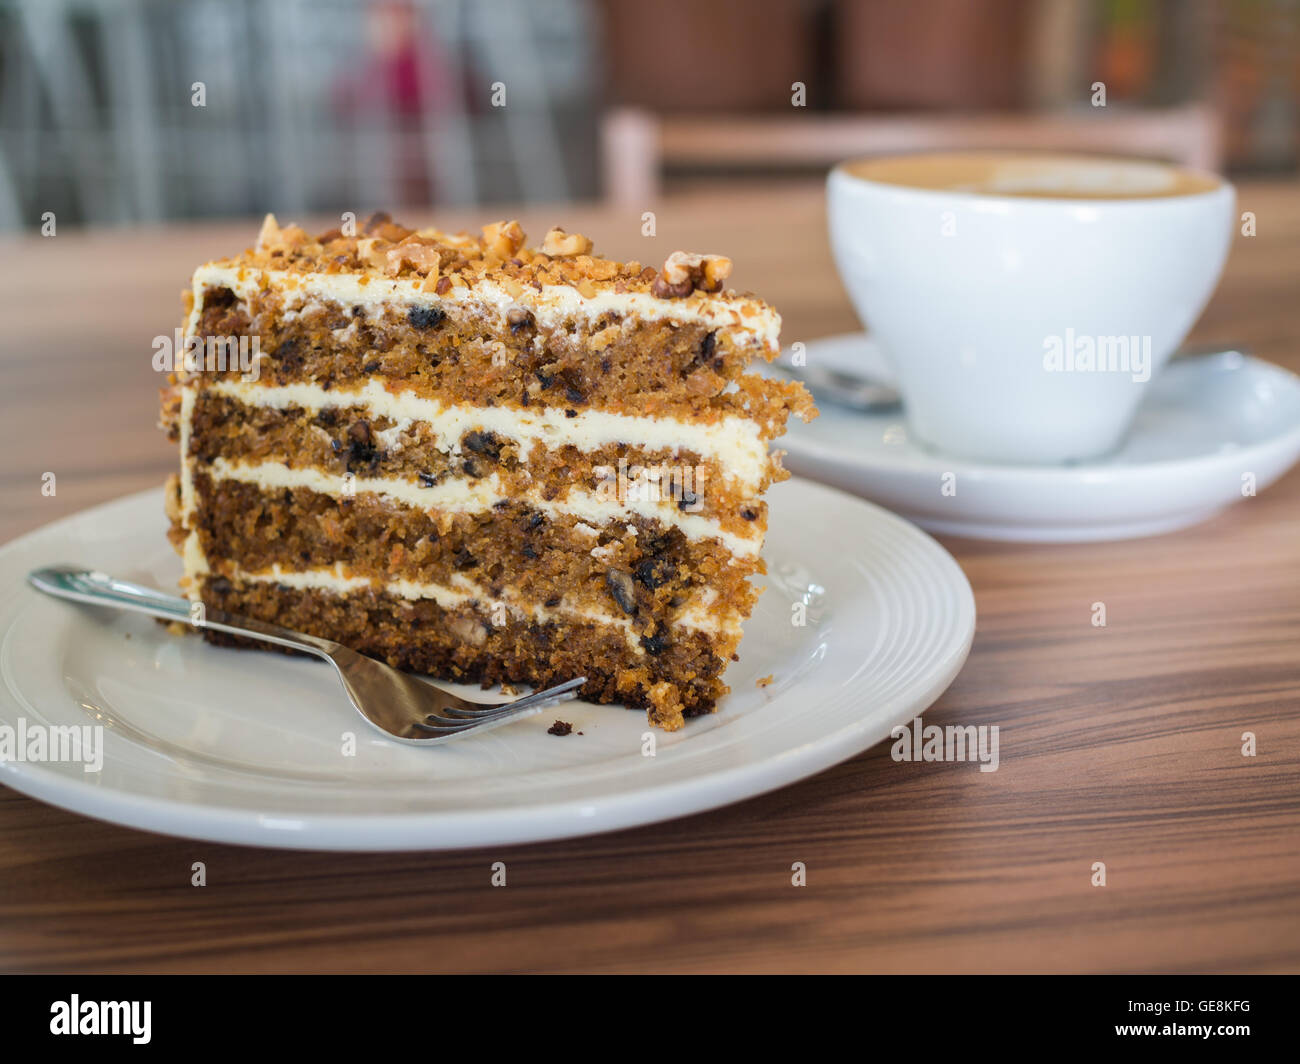 Carrot cake with walnuts on wooden table. selective focus Stock Photo